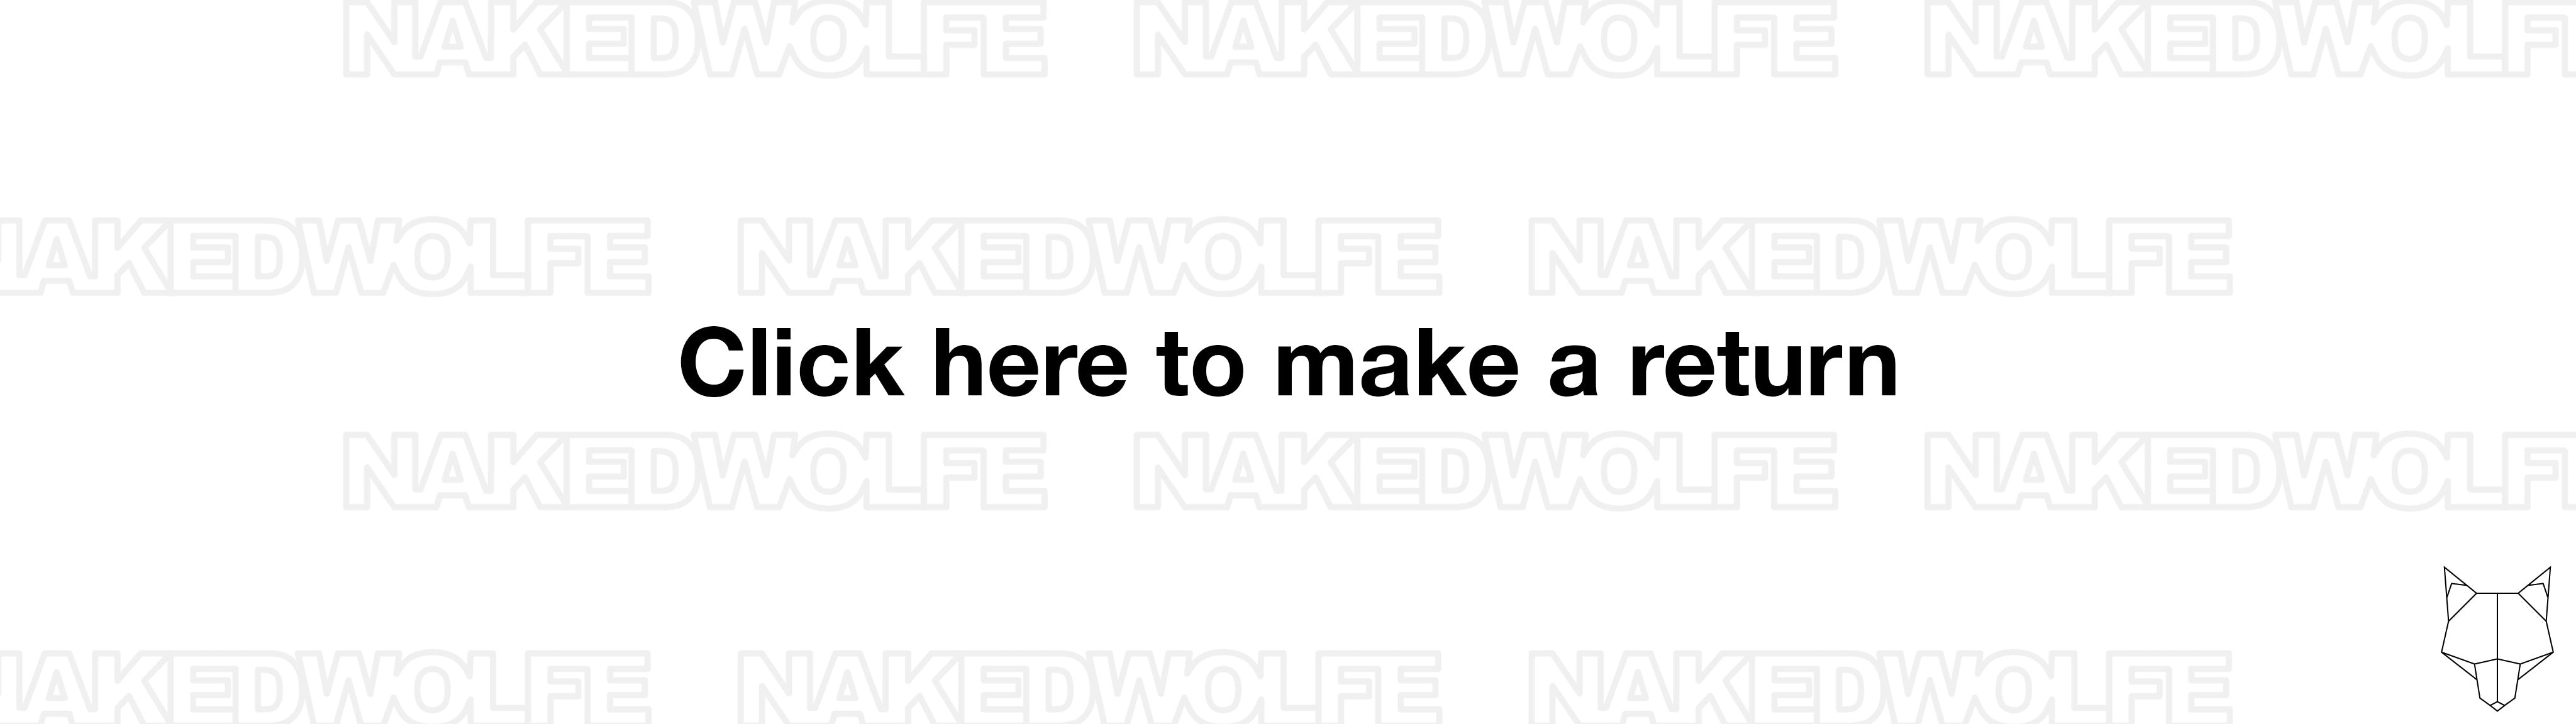 Naked Wolfe Make A Return